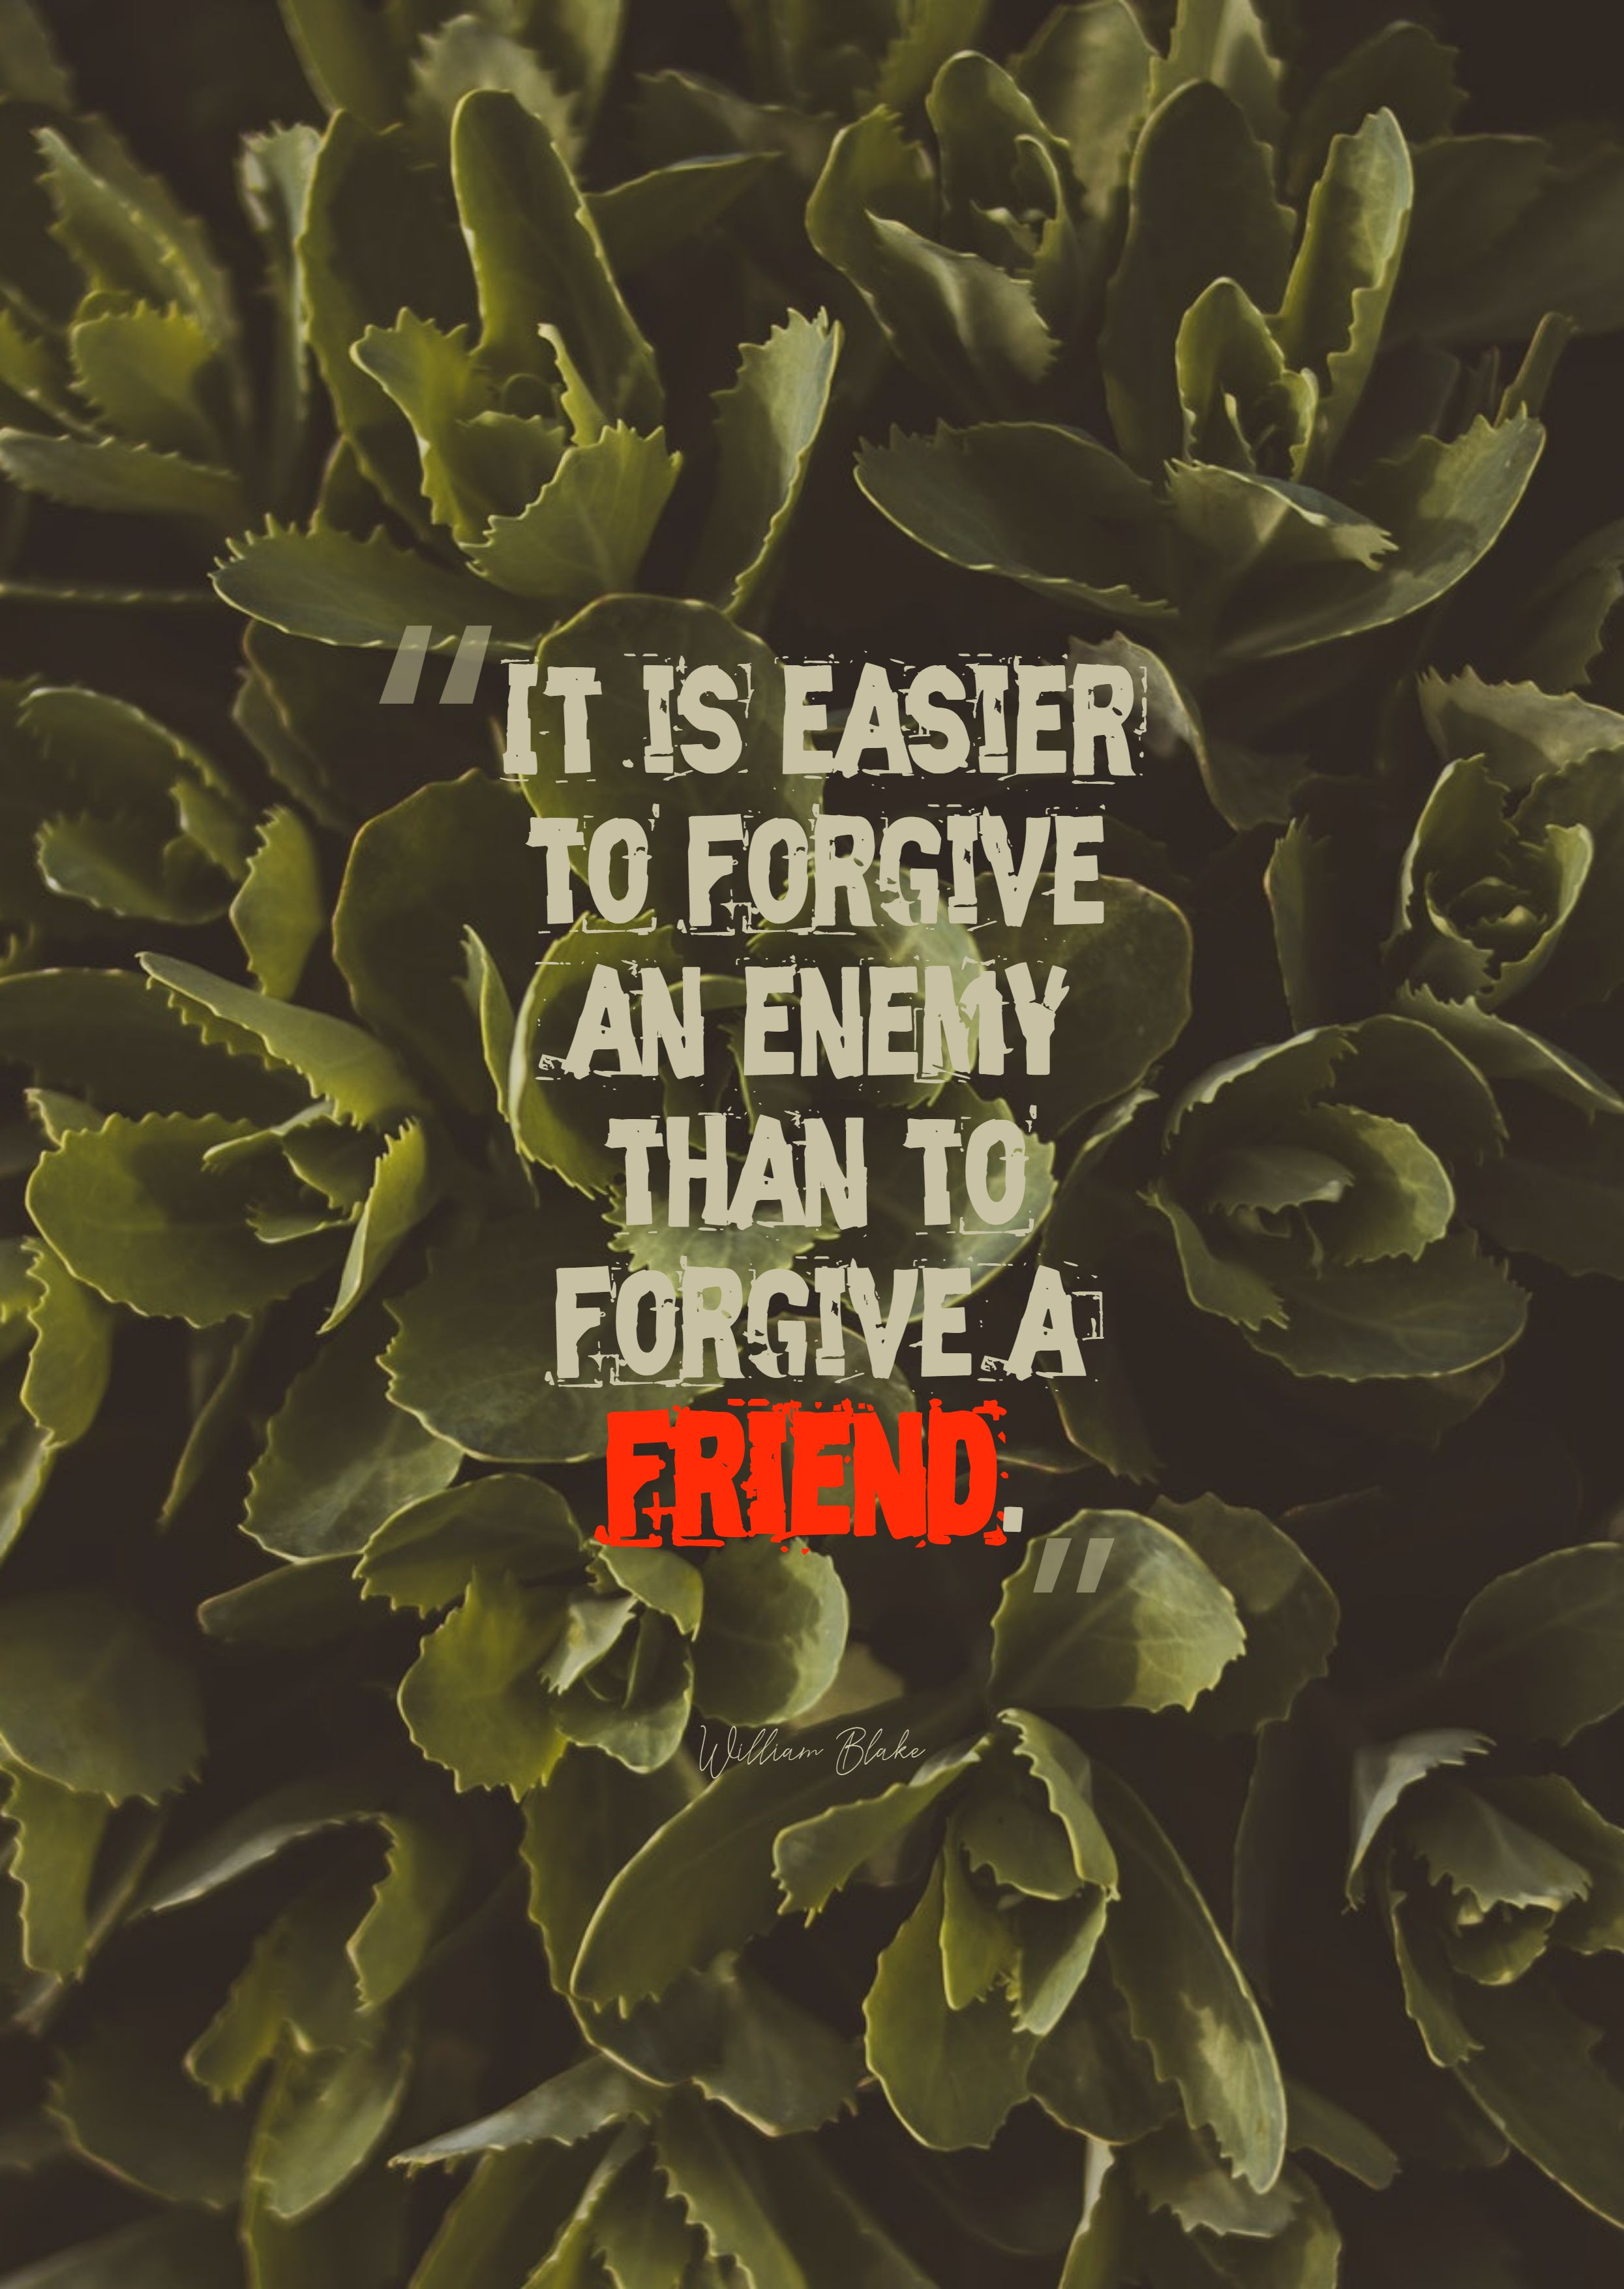 Quotes image of It is easier to forgive an enemy than to forgive a friend.